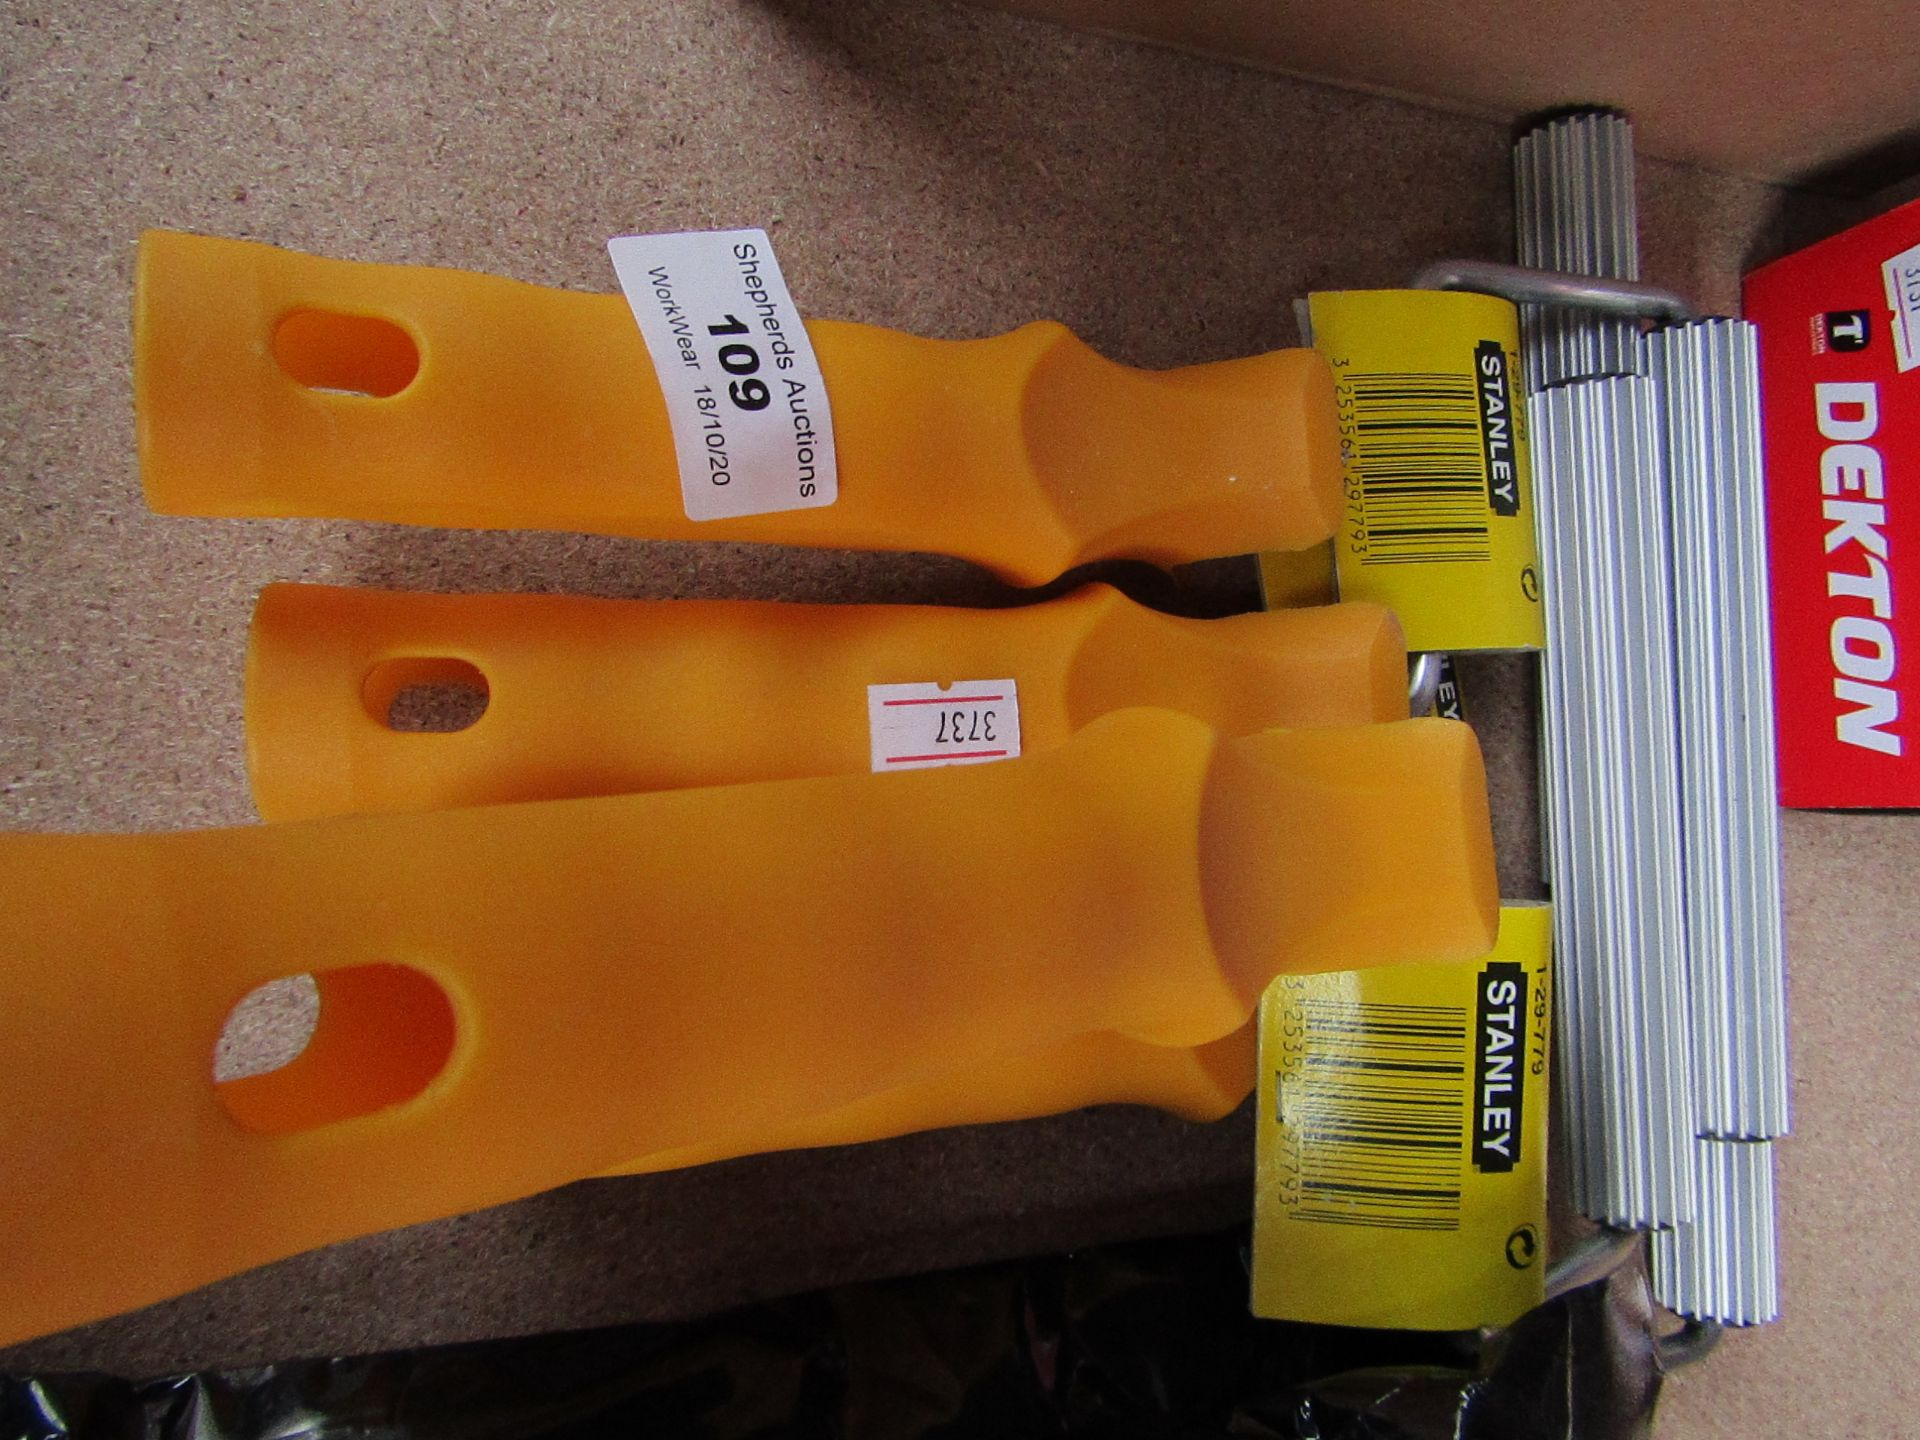 Lot 109 - 4x Stanley - Small Rollers - Good Condition.